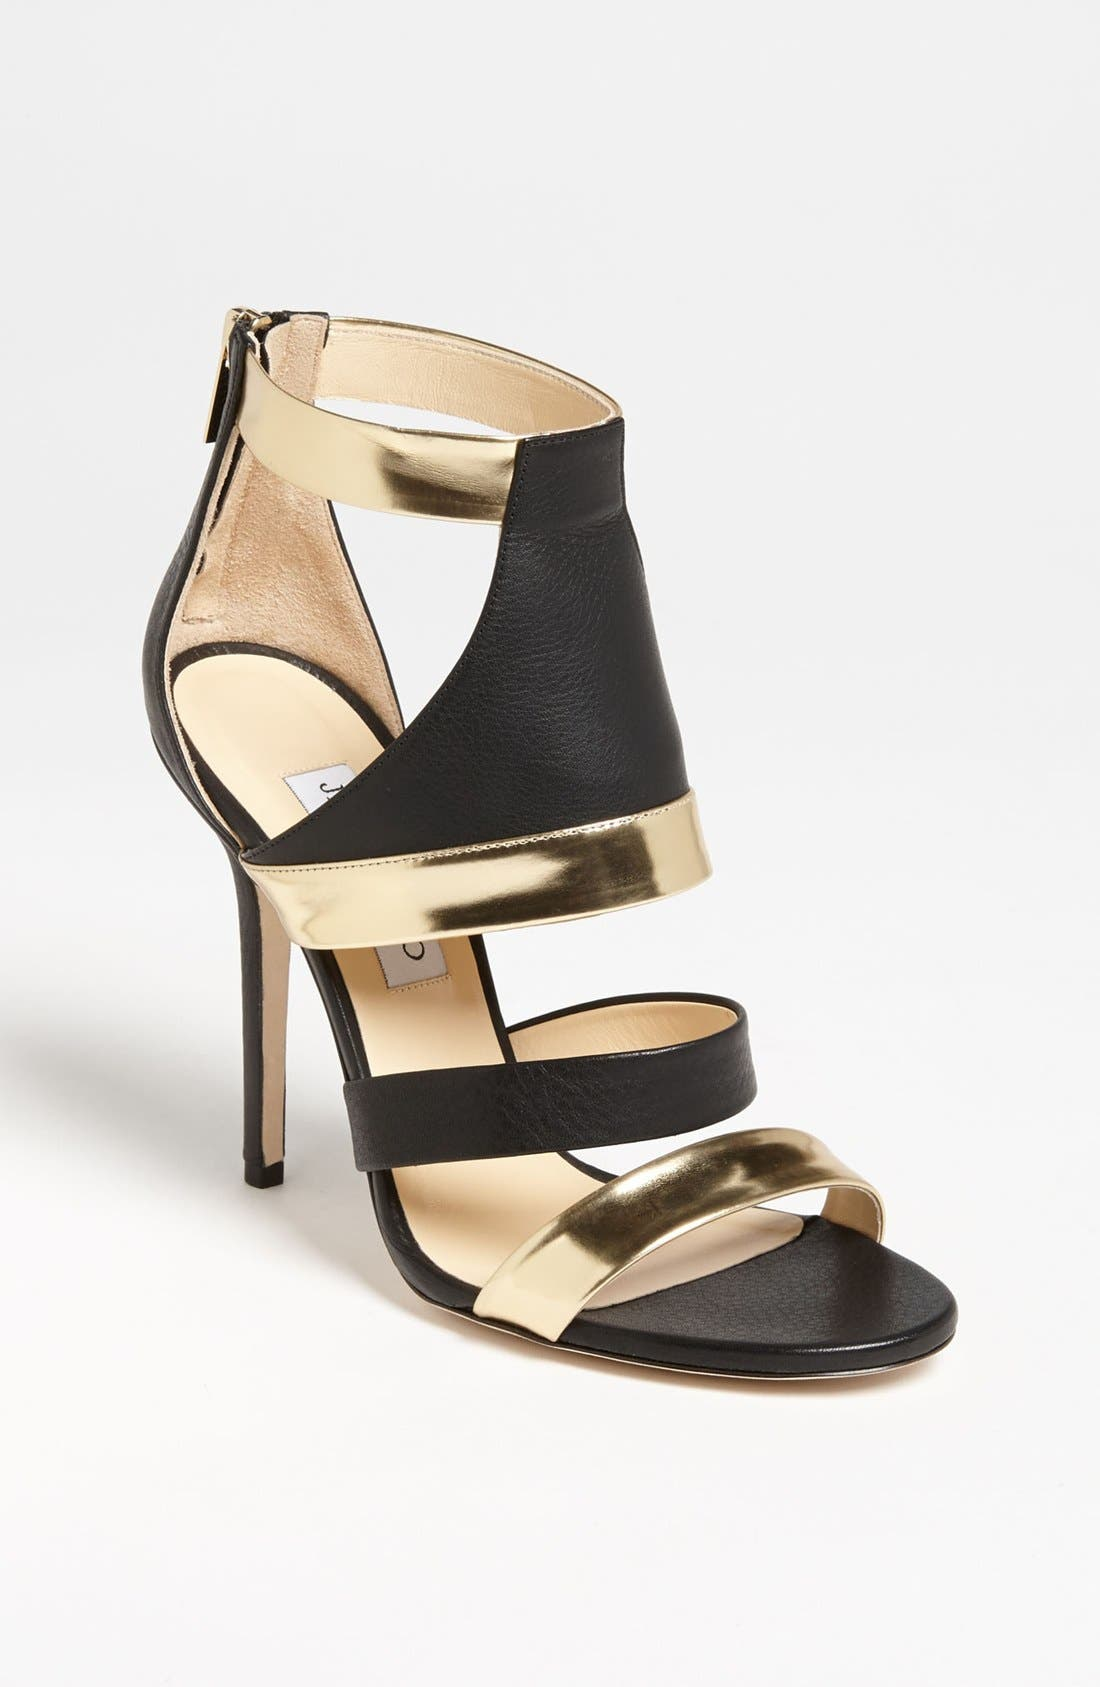 Alternate Image 1 Selected - Jimmy Choo 'Besso' Sandal